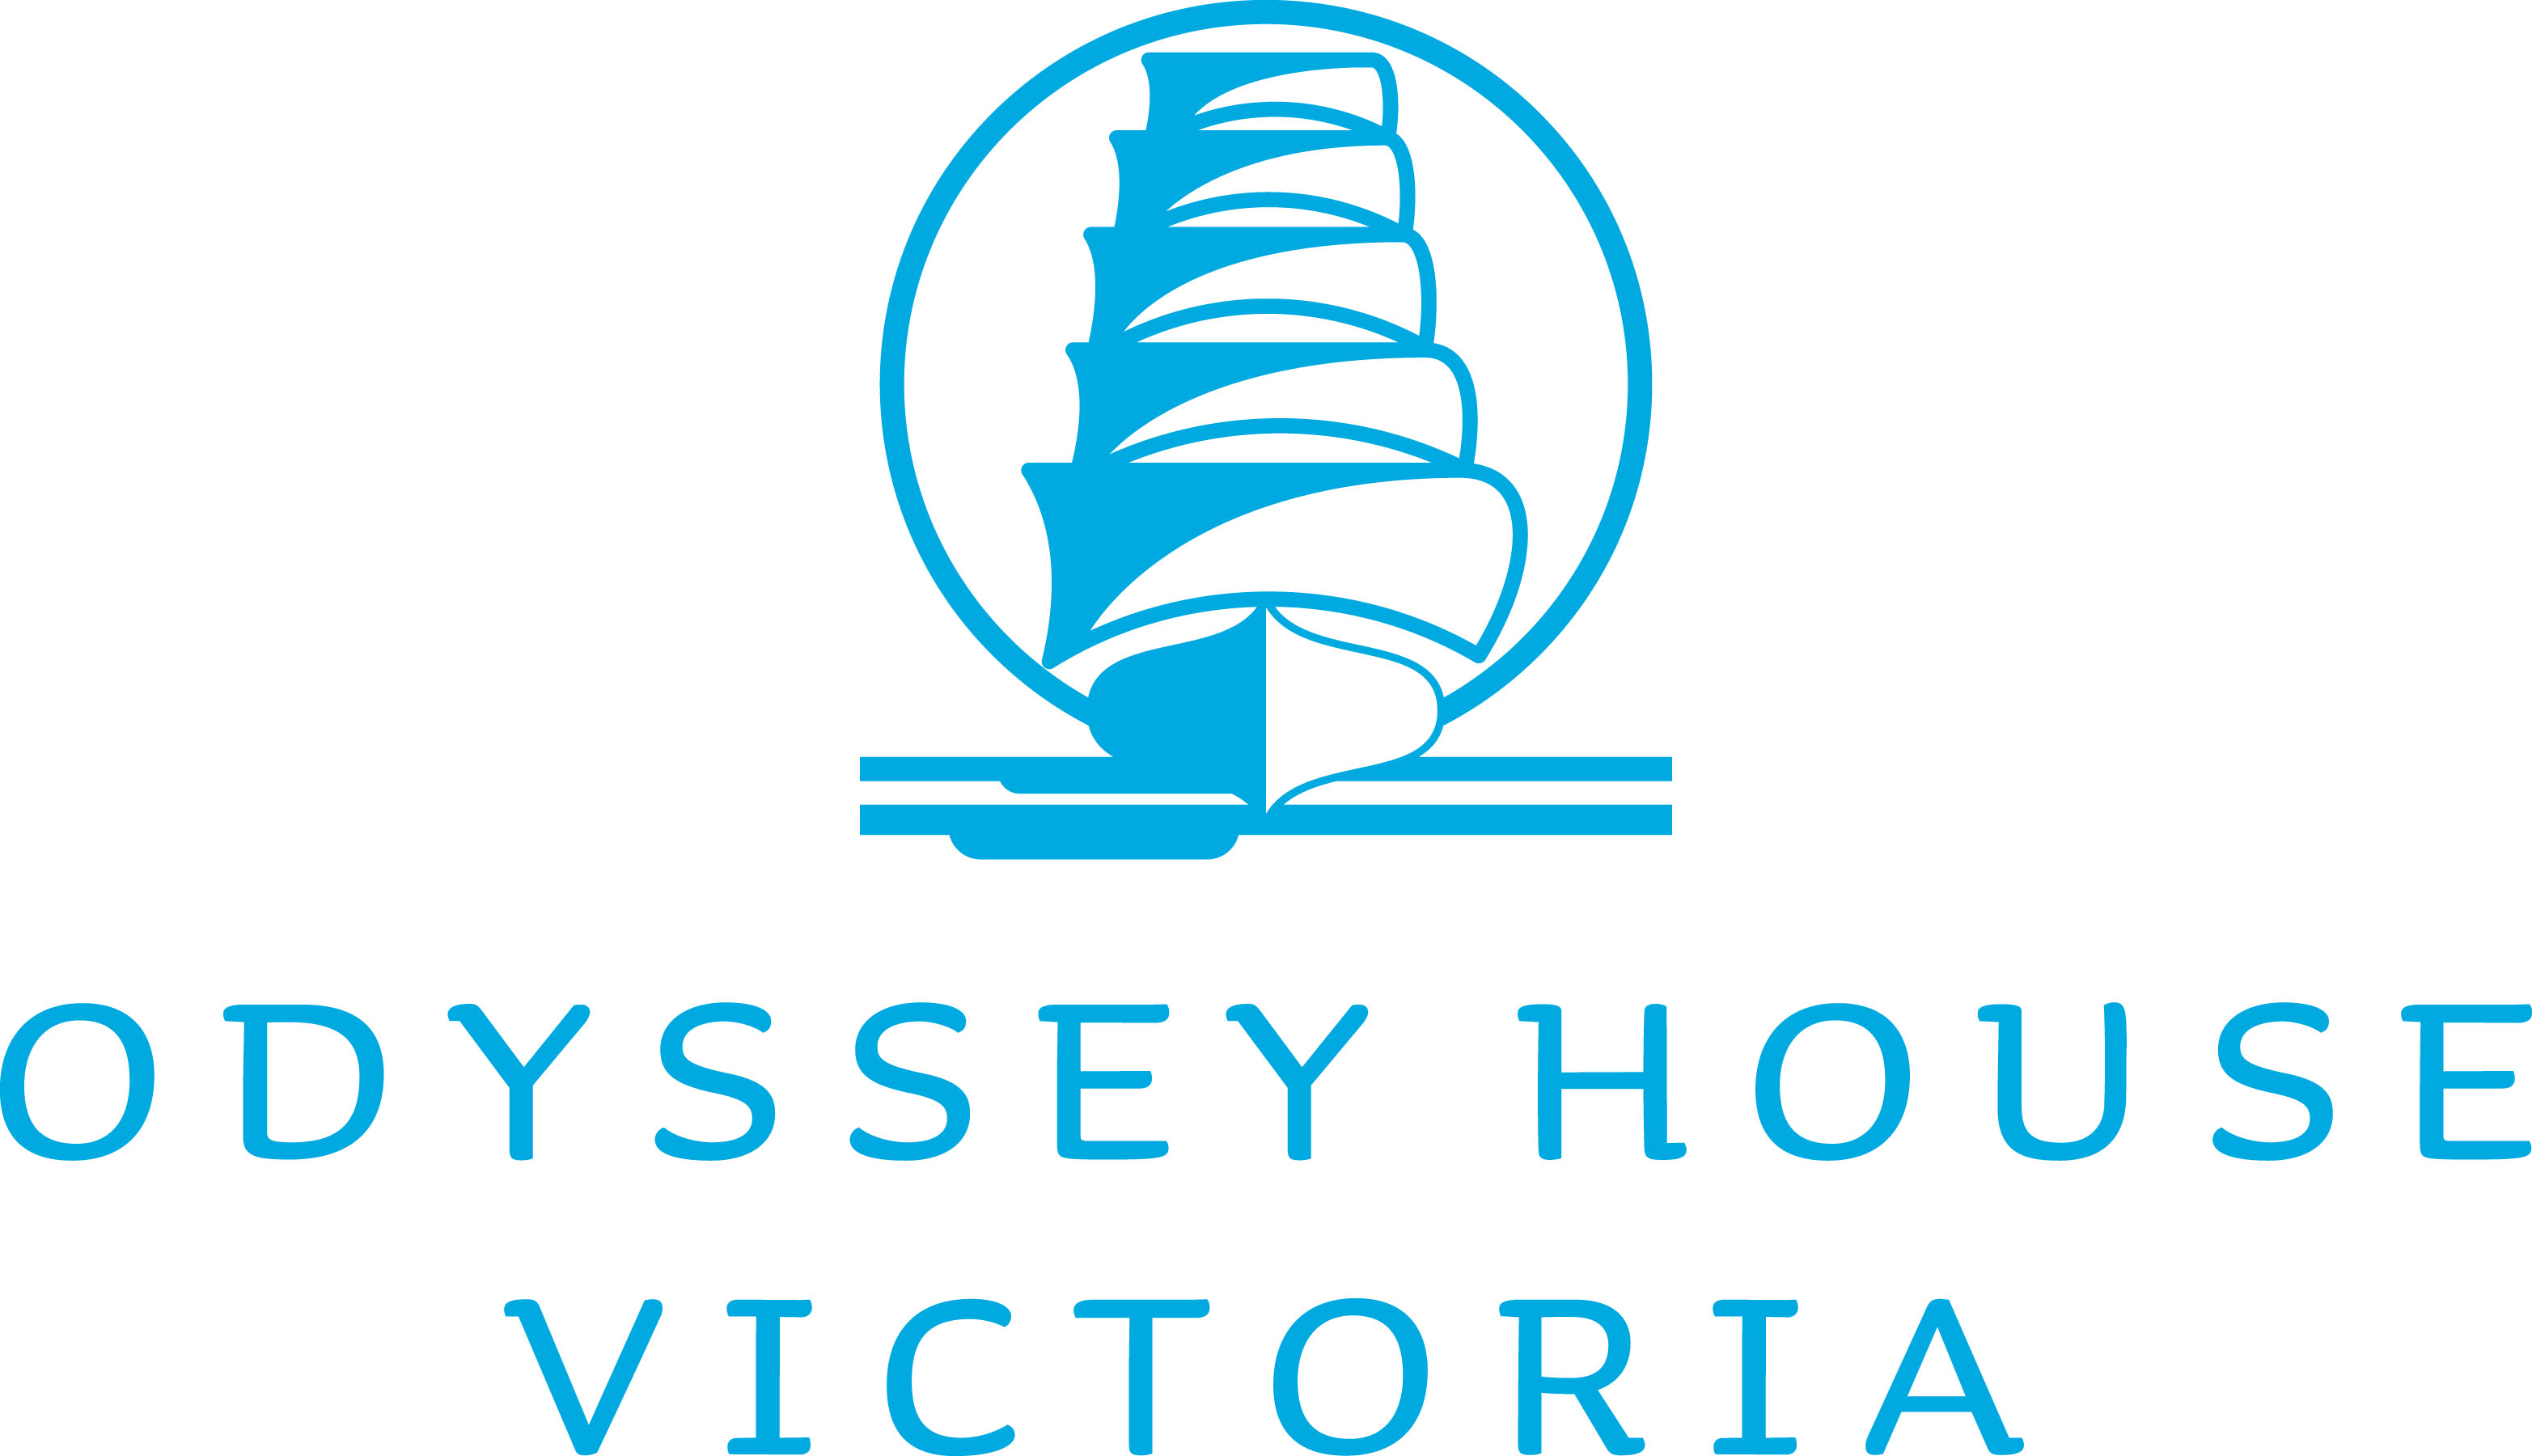 Juniper Network Connect - Windows 7 – Odyssey House Victoria